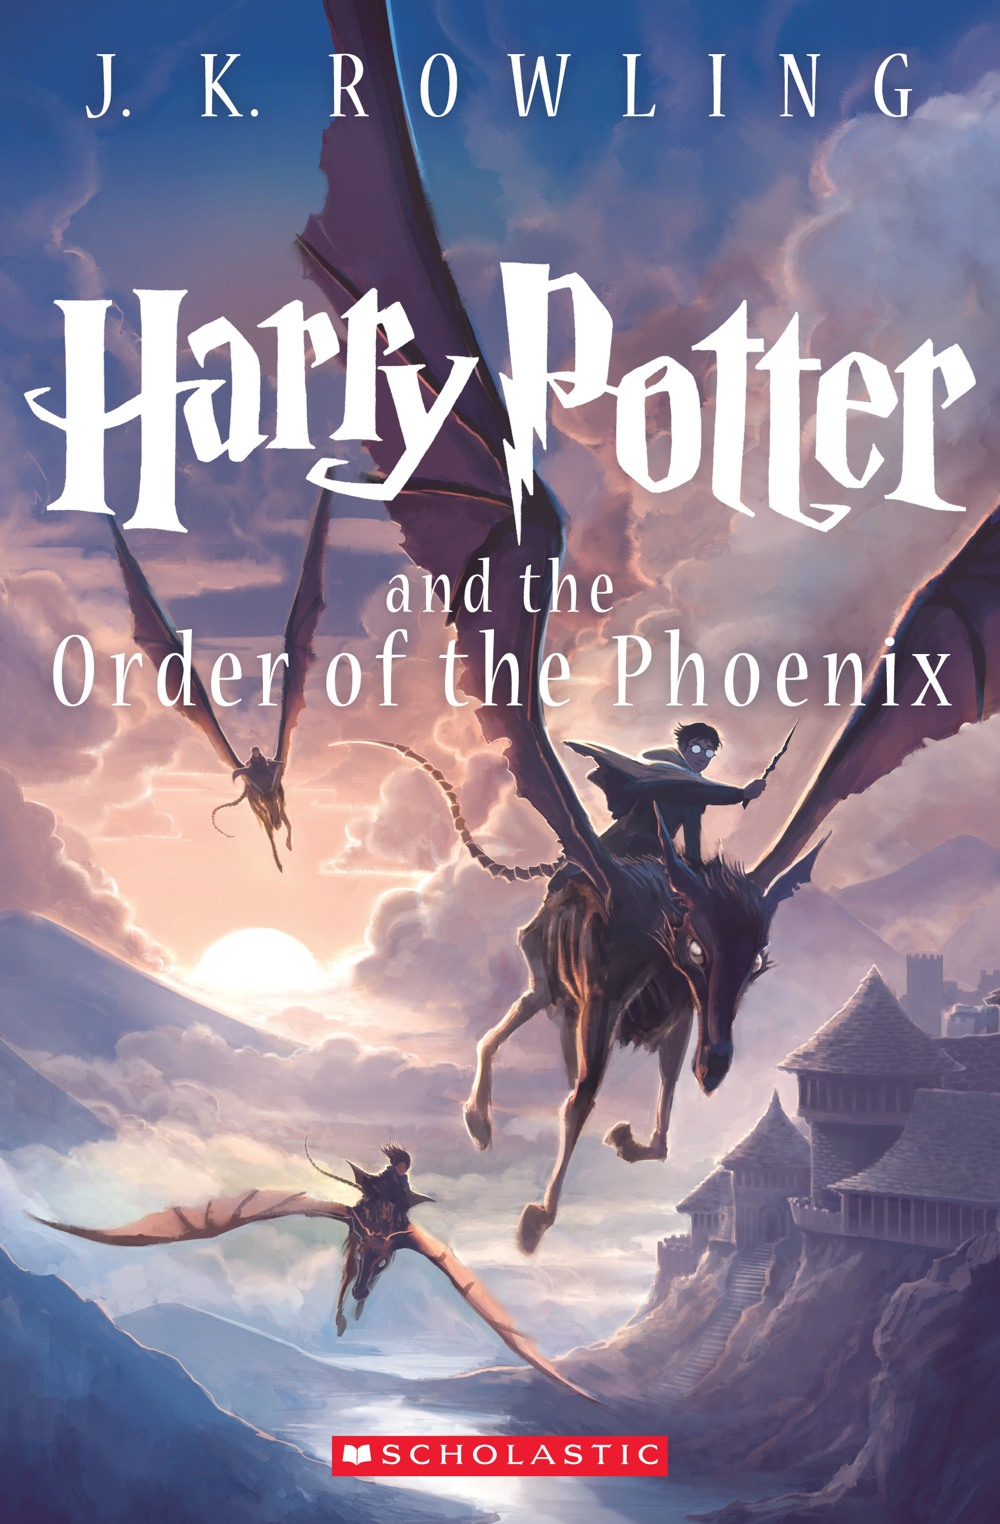 Special Edition Harry Potter Paperback Box Set Order-of-the-phoenix-new-cover-1000